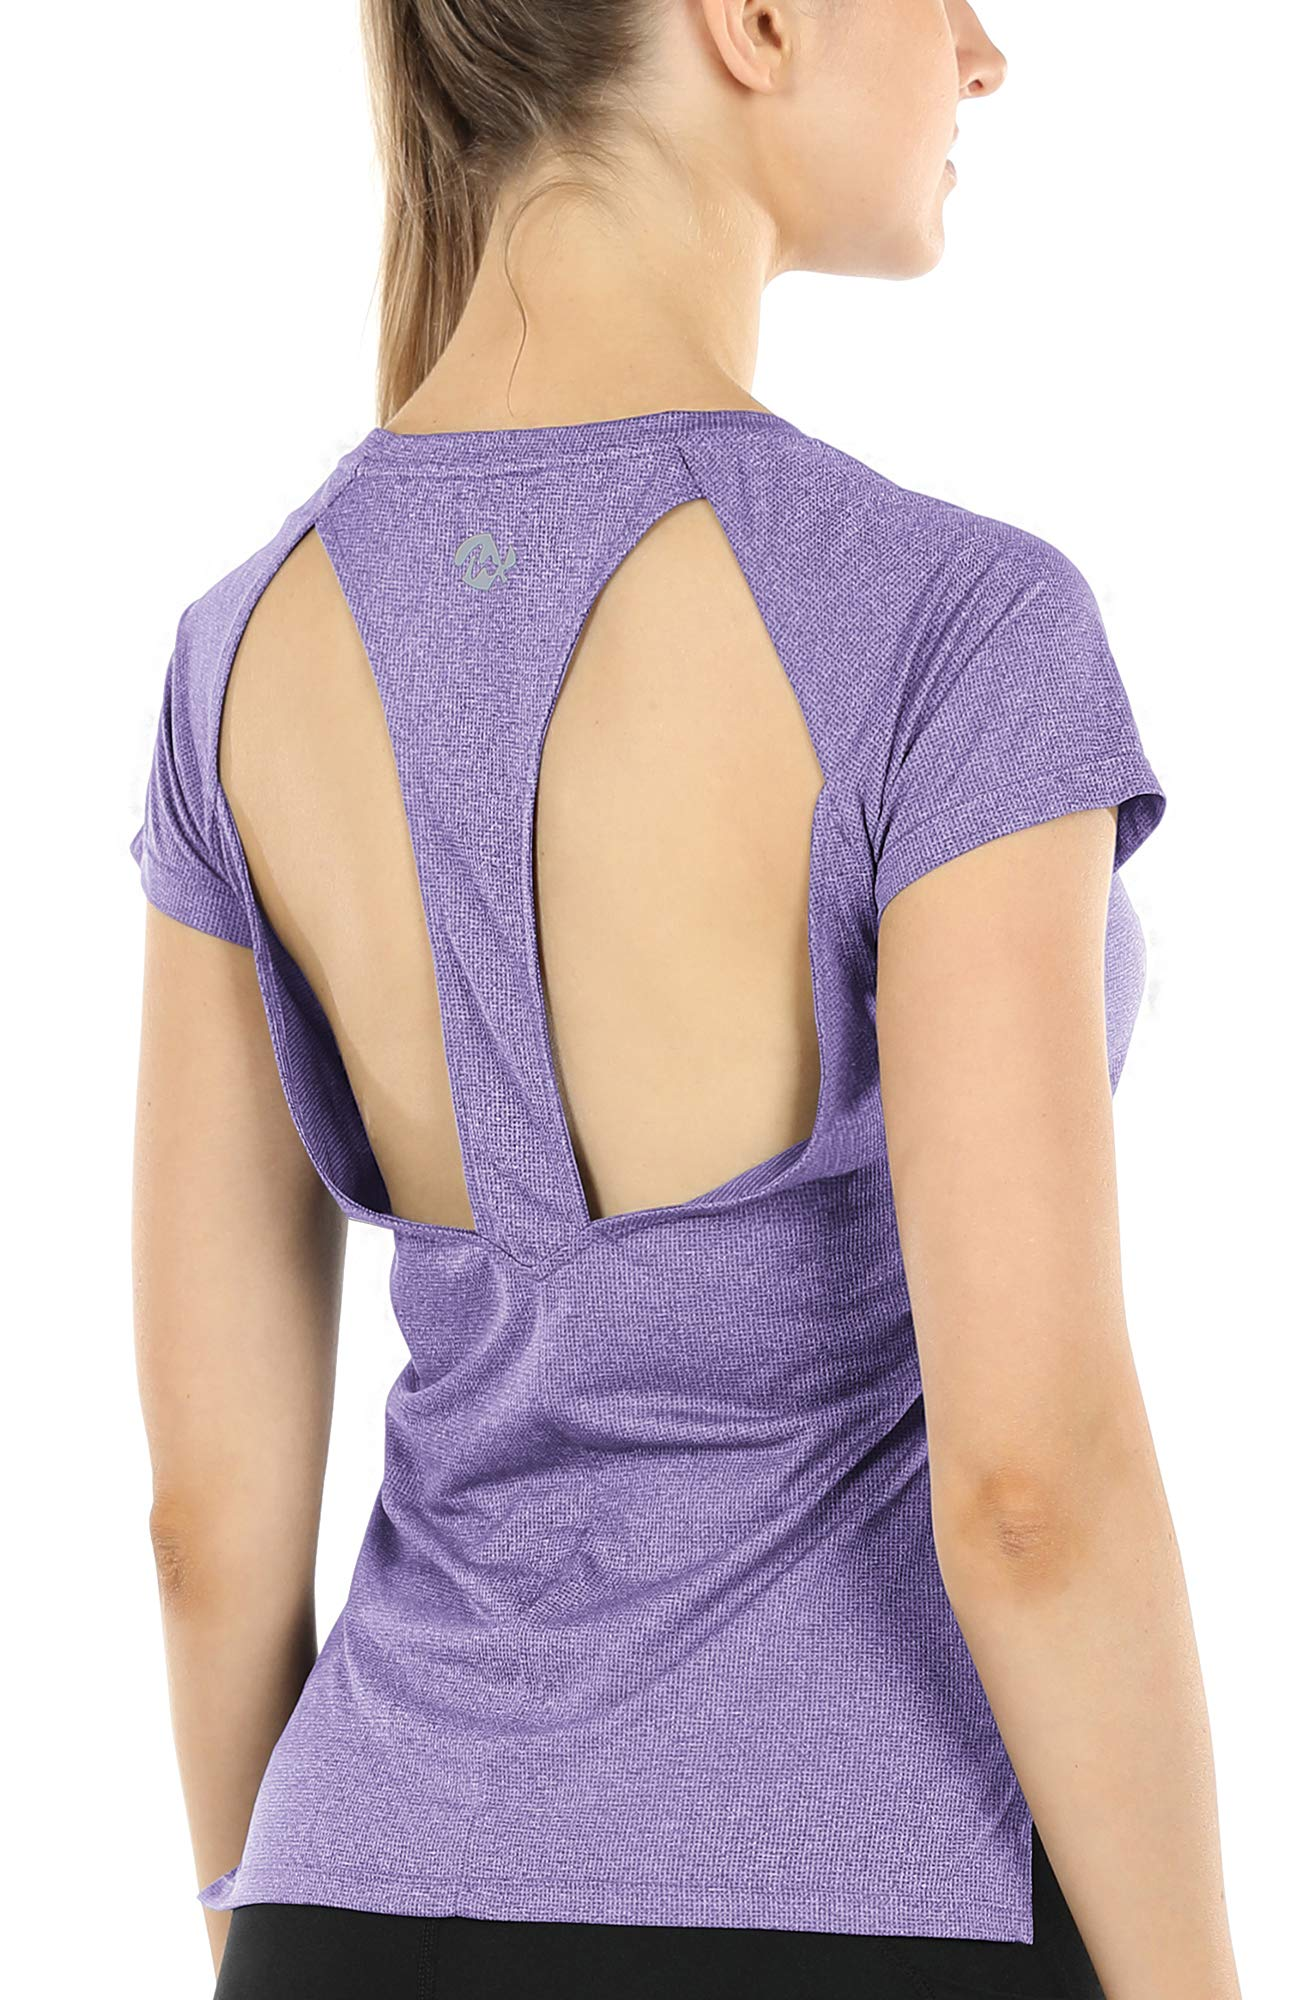 Melpoint Workout Yoga Shirts for Women - Open Back Athletic Tops Gym Running Exercise Tshirts Loose Fit (Lavender, L)